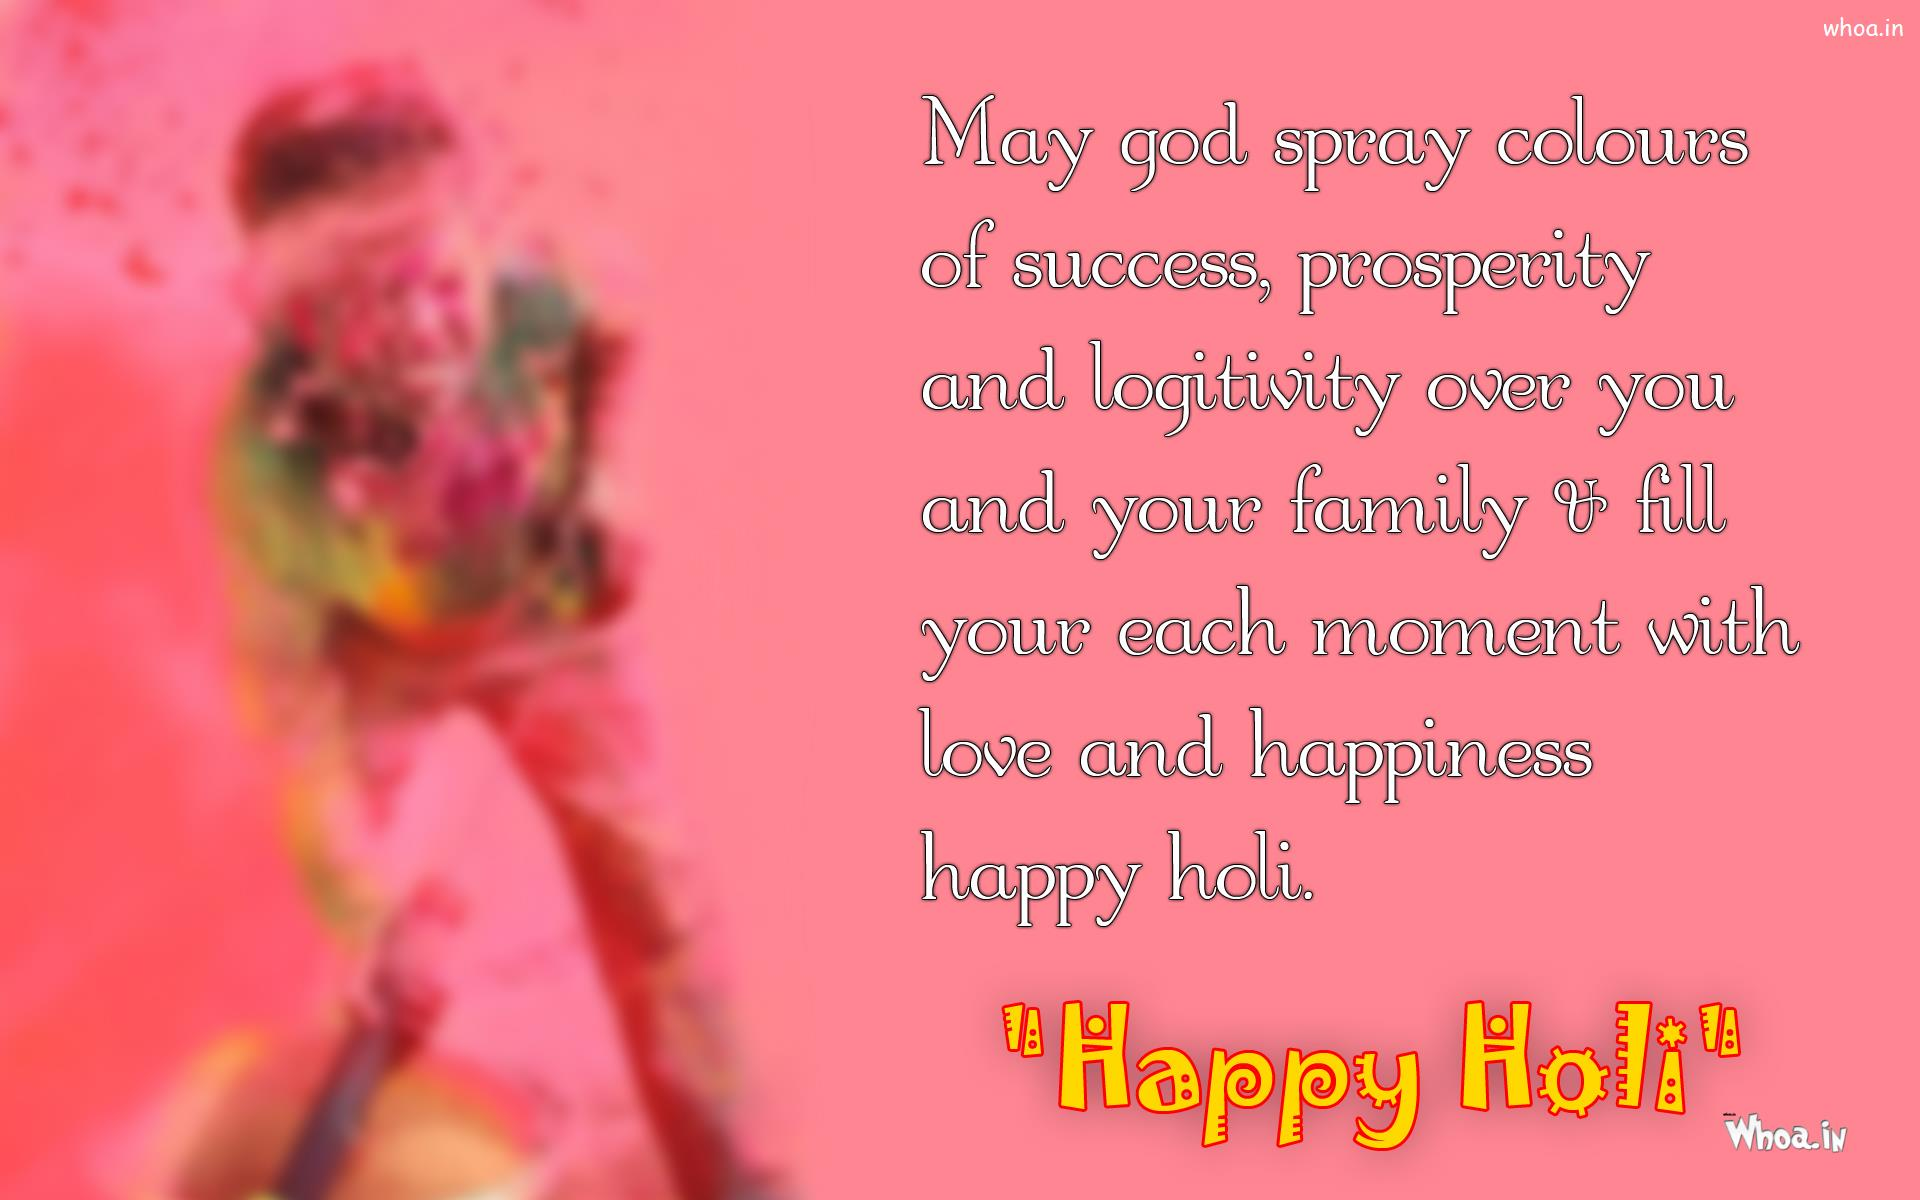 Popular Wallpaper Love Holi - happy-holi-colorful-wallpaper-for-colorful-greetings  2018_723138.in/download/happy-holi-colorful-wallpaper-for-colorful-greetings